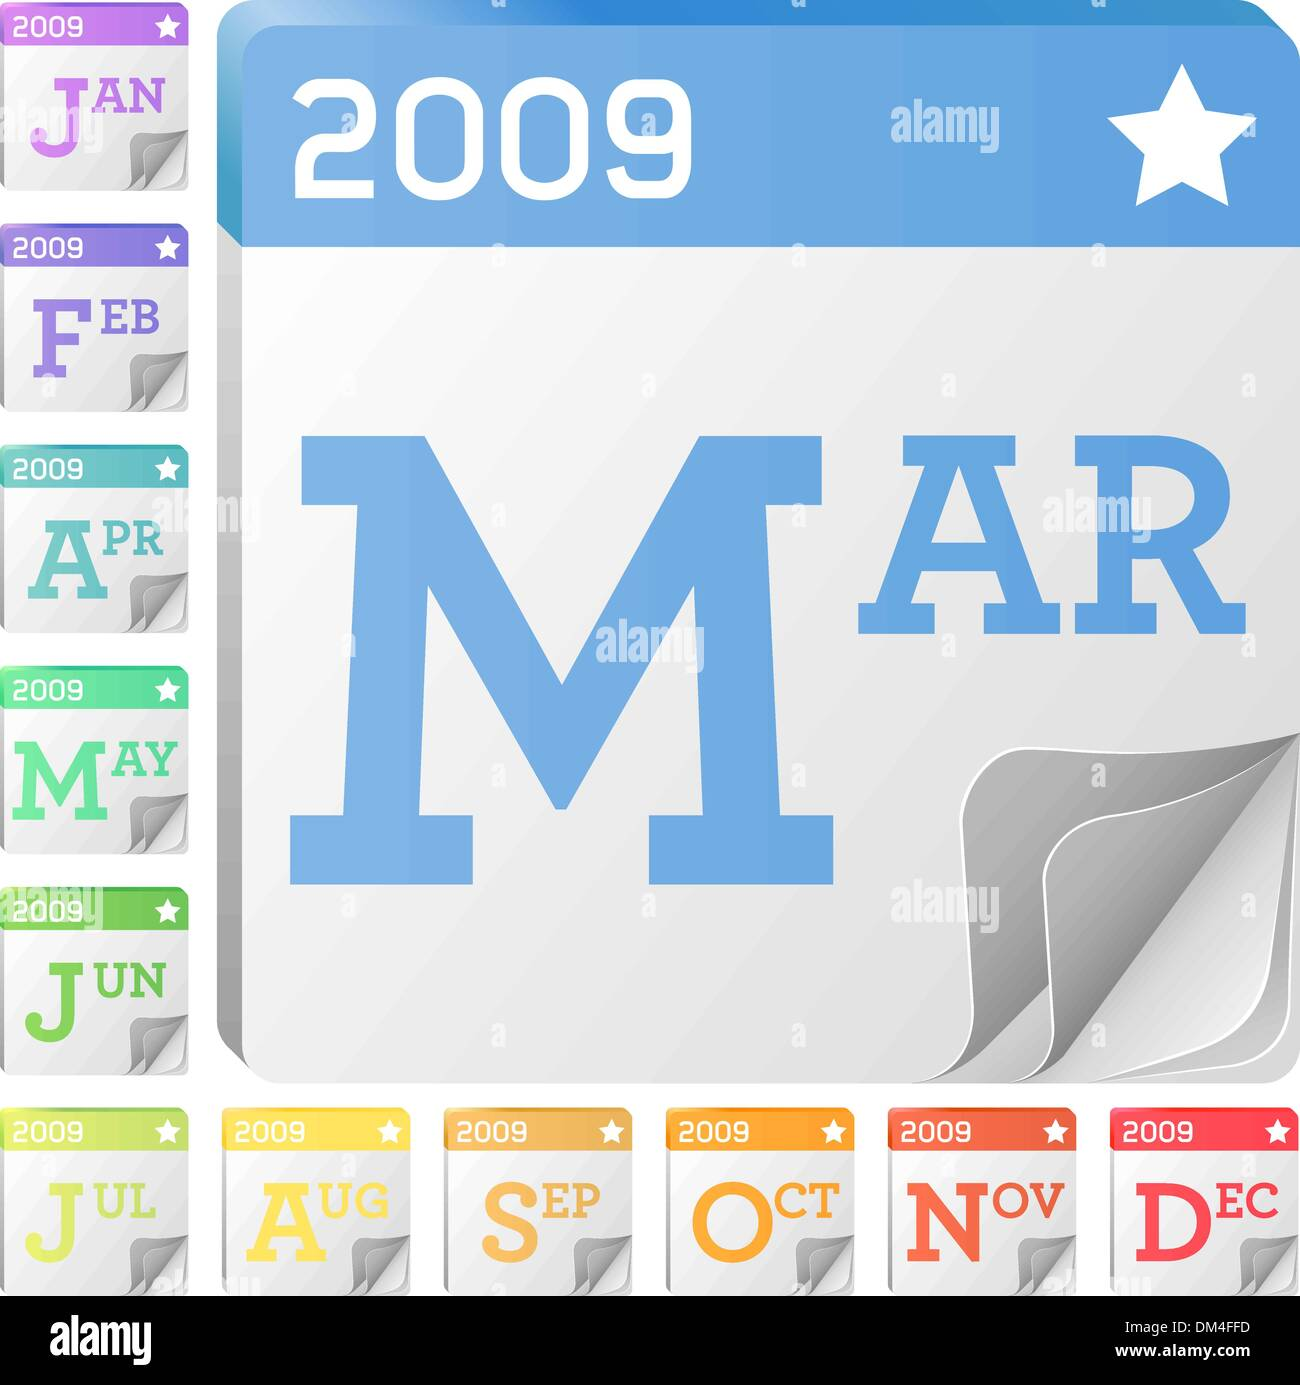 2009 Month and Calendar Icons - Stock Vector